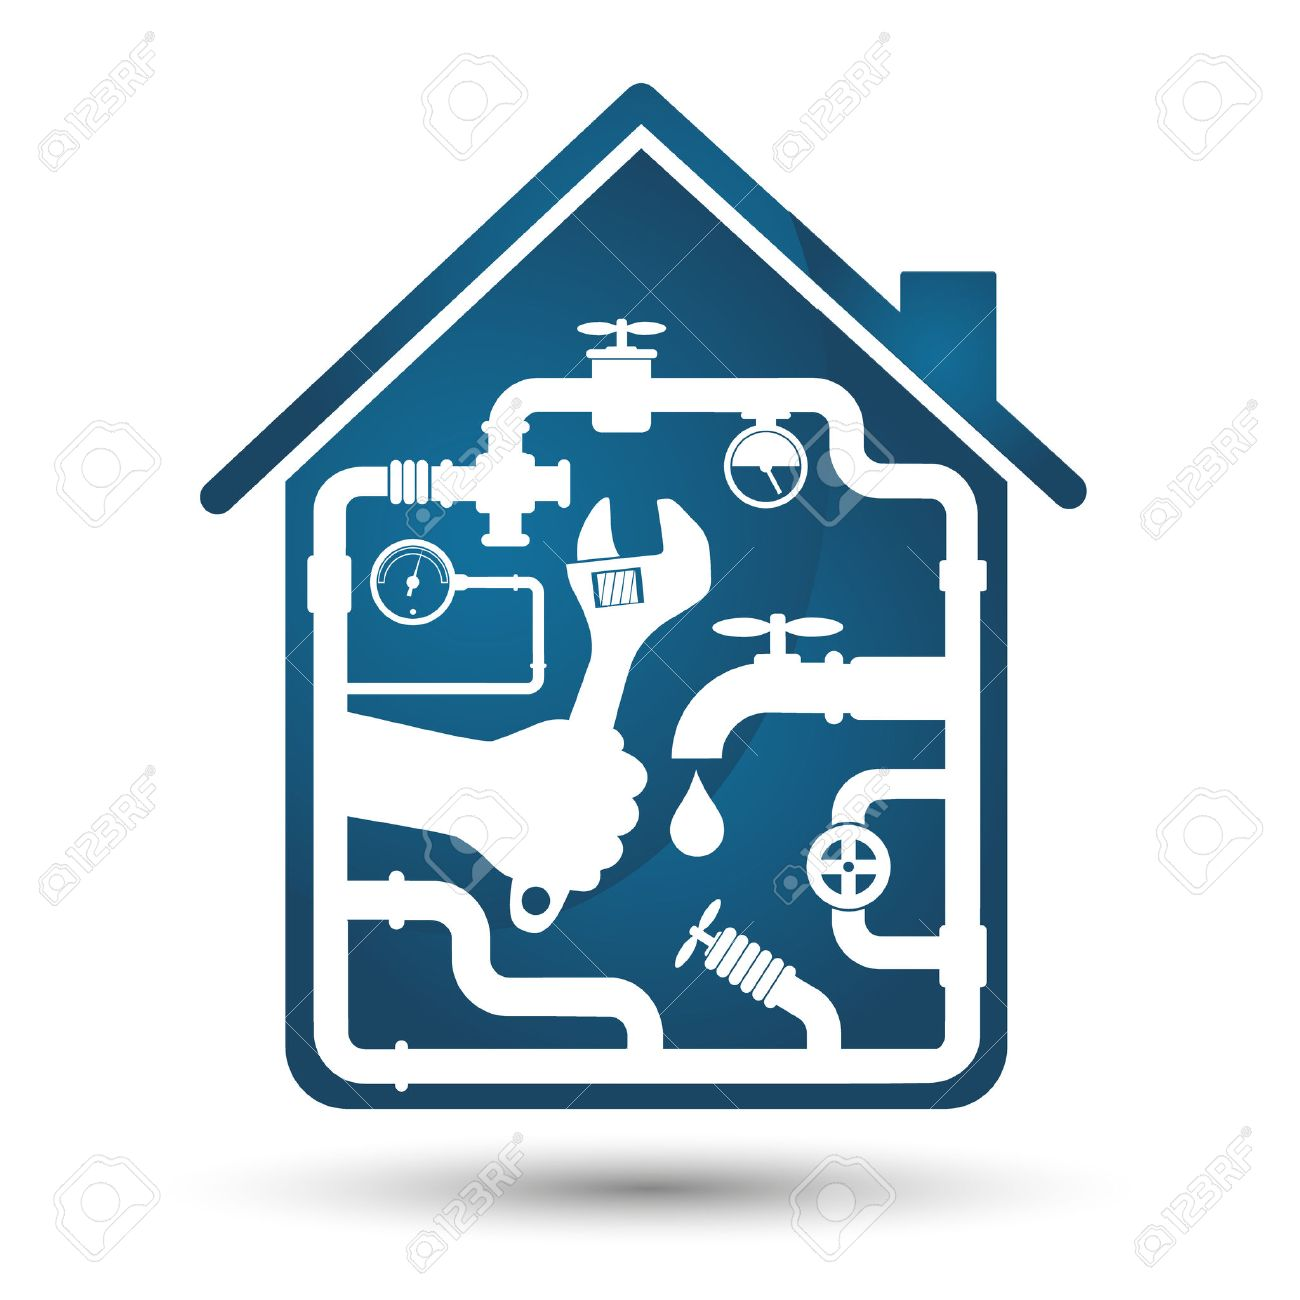 Plumbing Repair The House A Symbol Of Business Royalty Free